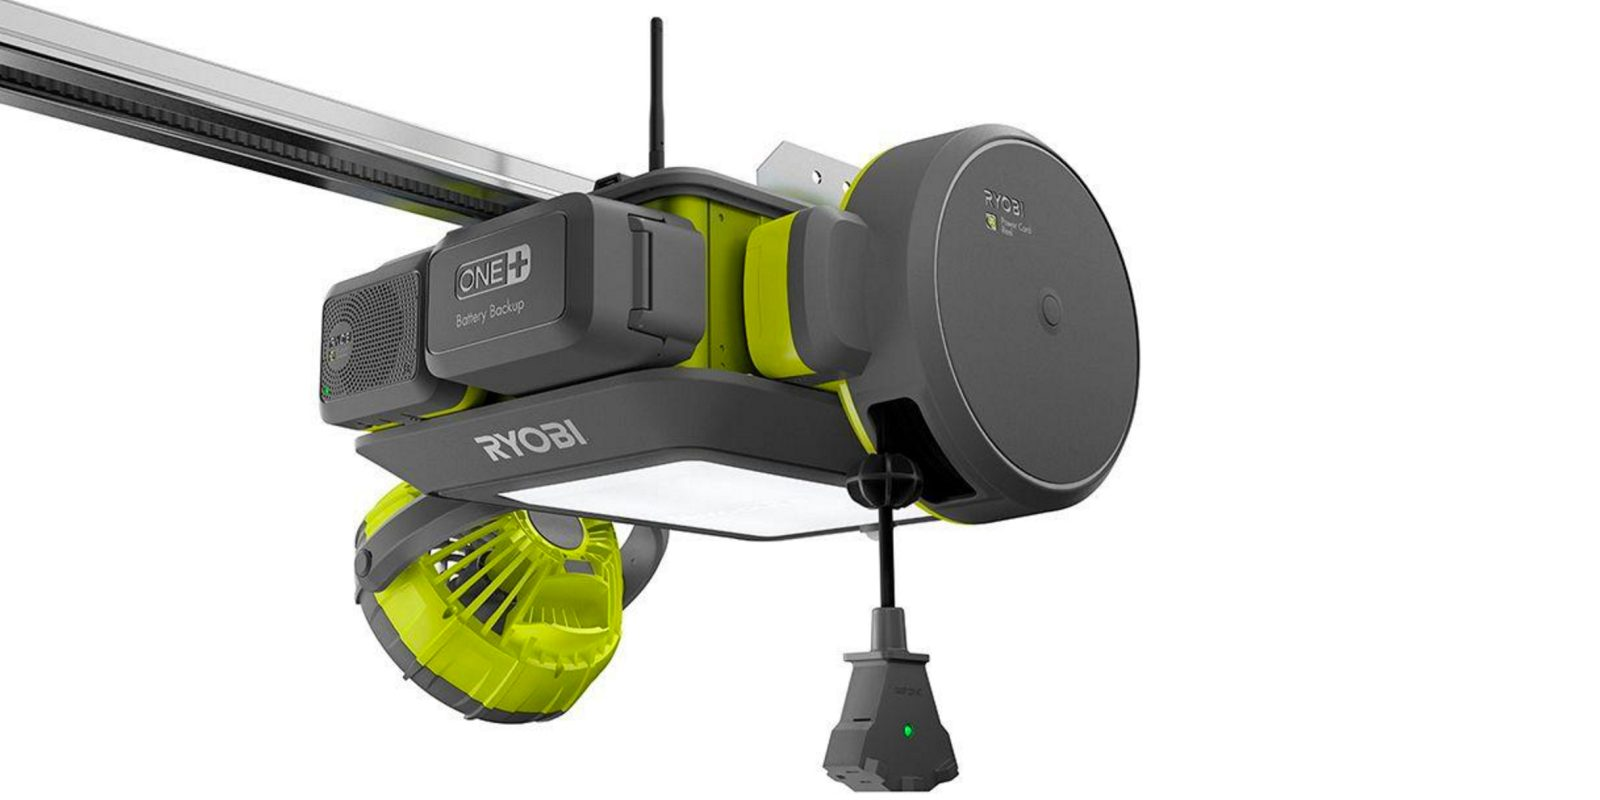 Ryobi S Wi Fi Enabled Garage Door Opener Is Packed With Features For